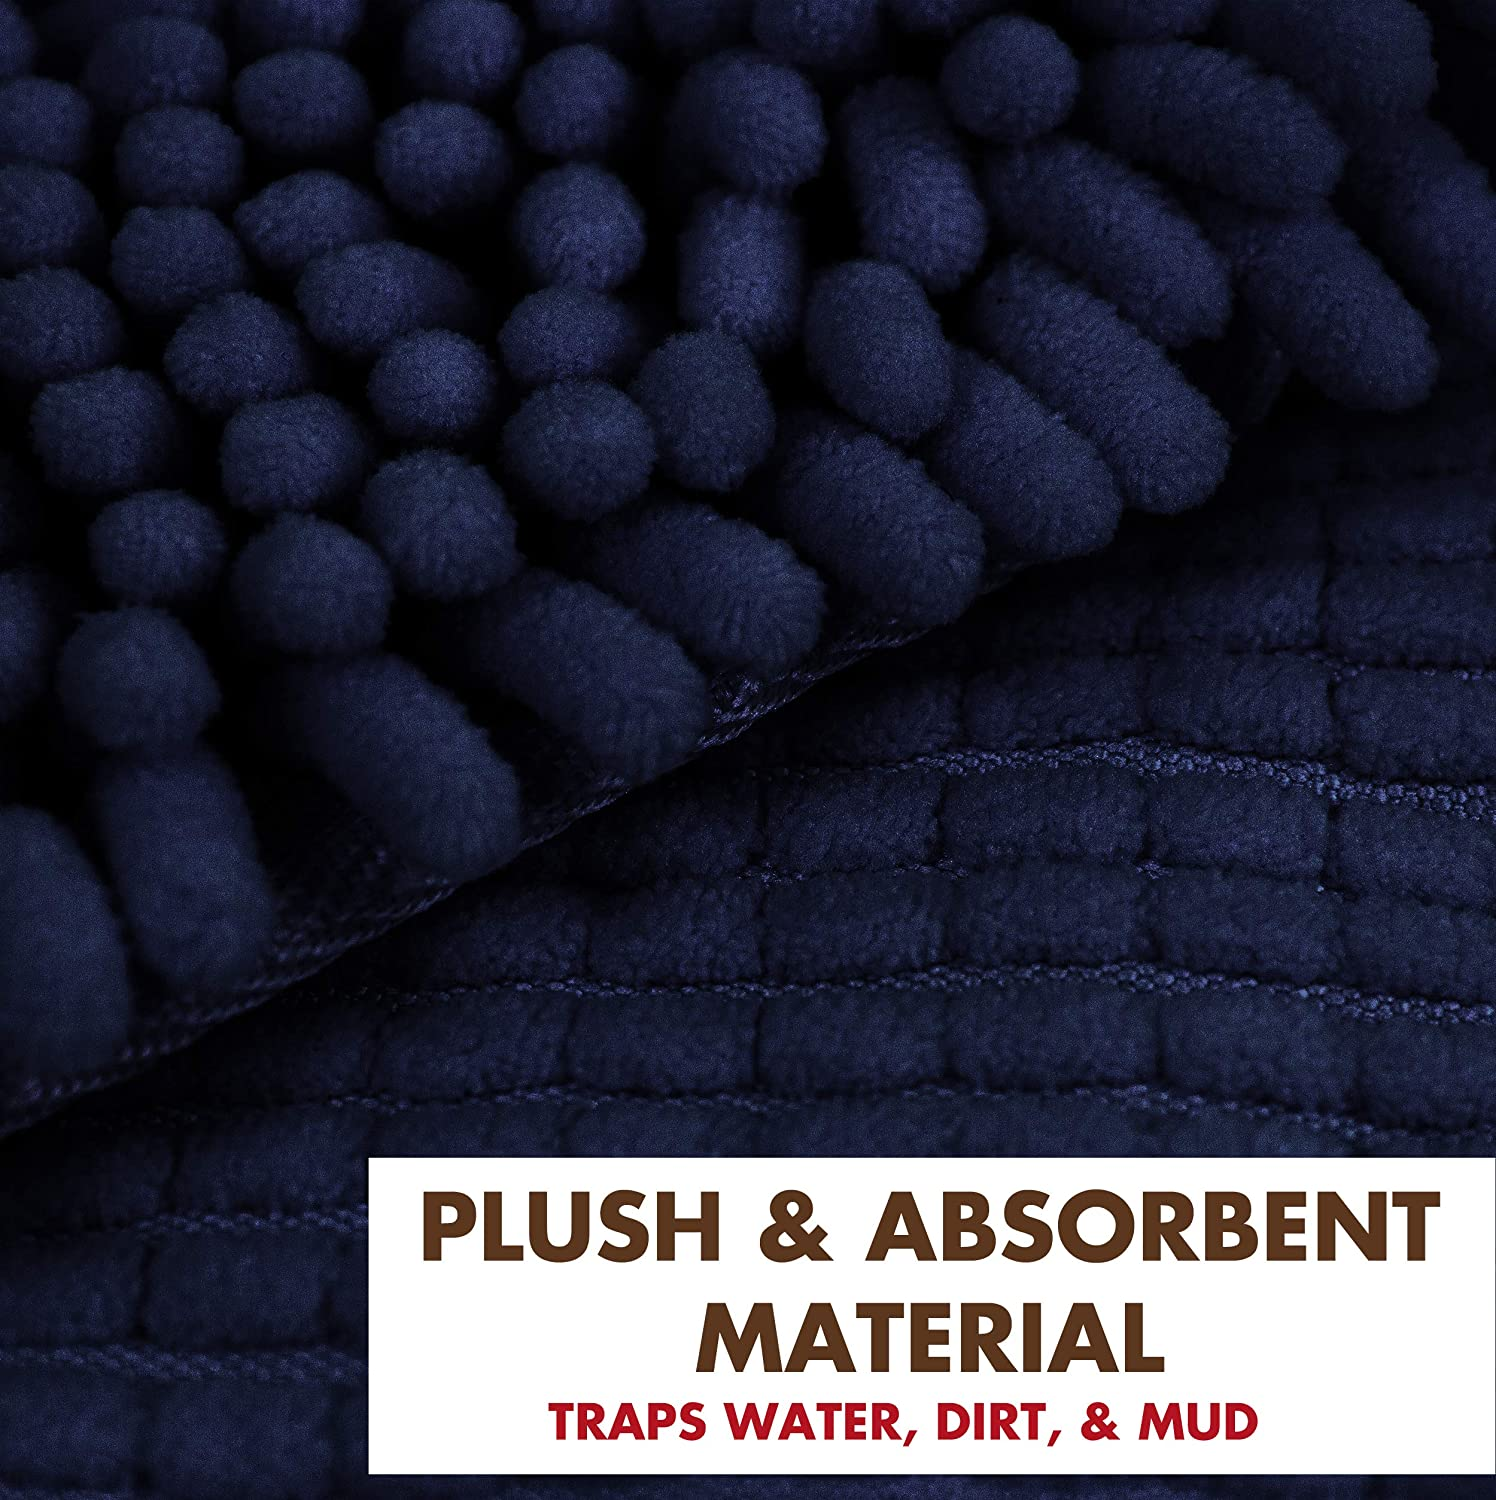 My Doggy Place - Ultra Absorbent Microfiber Chenille Dog Bath Shammy Dry Towel with Hand Pockets, Durable, Quick Drying, Washable, Prevent Mud Dirt Navy Blue